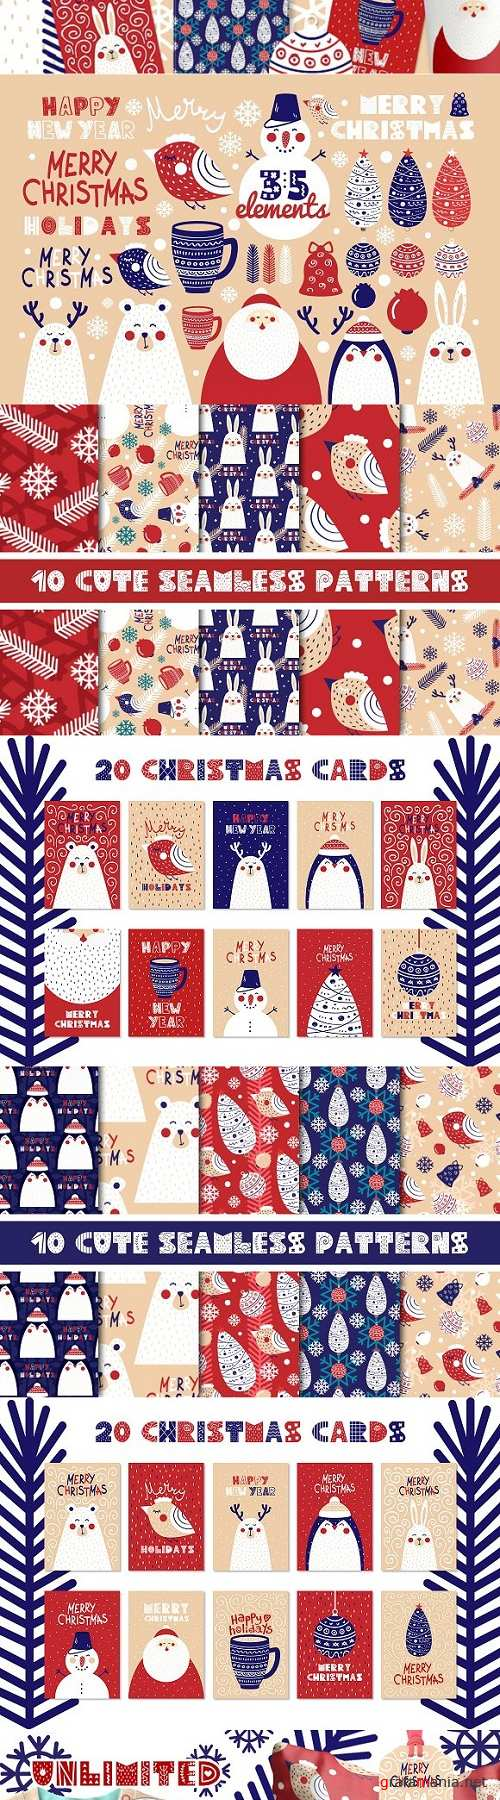 Christmas cards, elements & patterns - 2063768